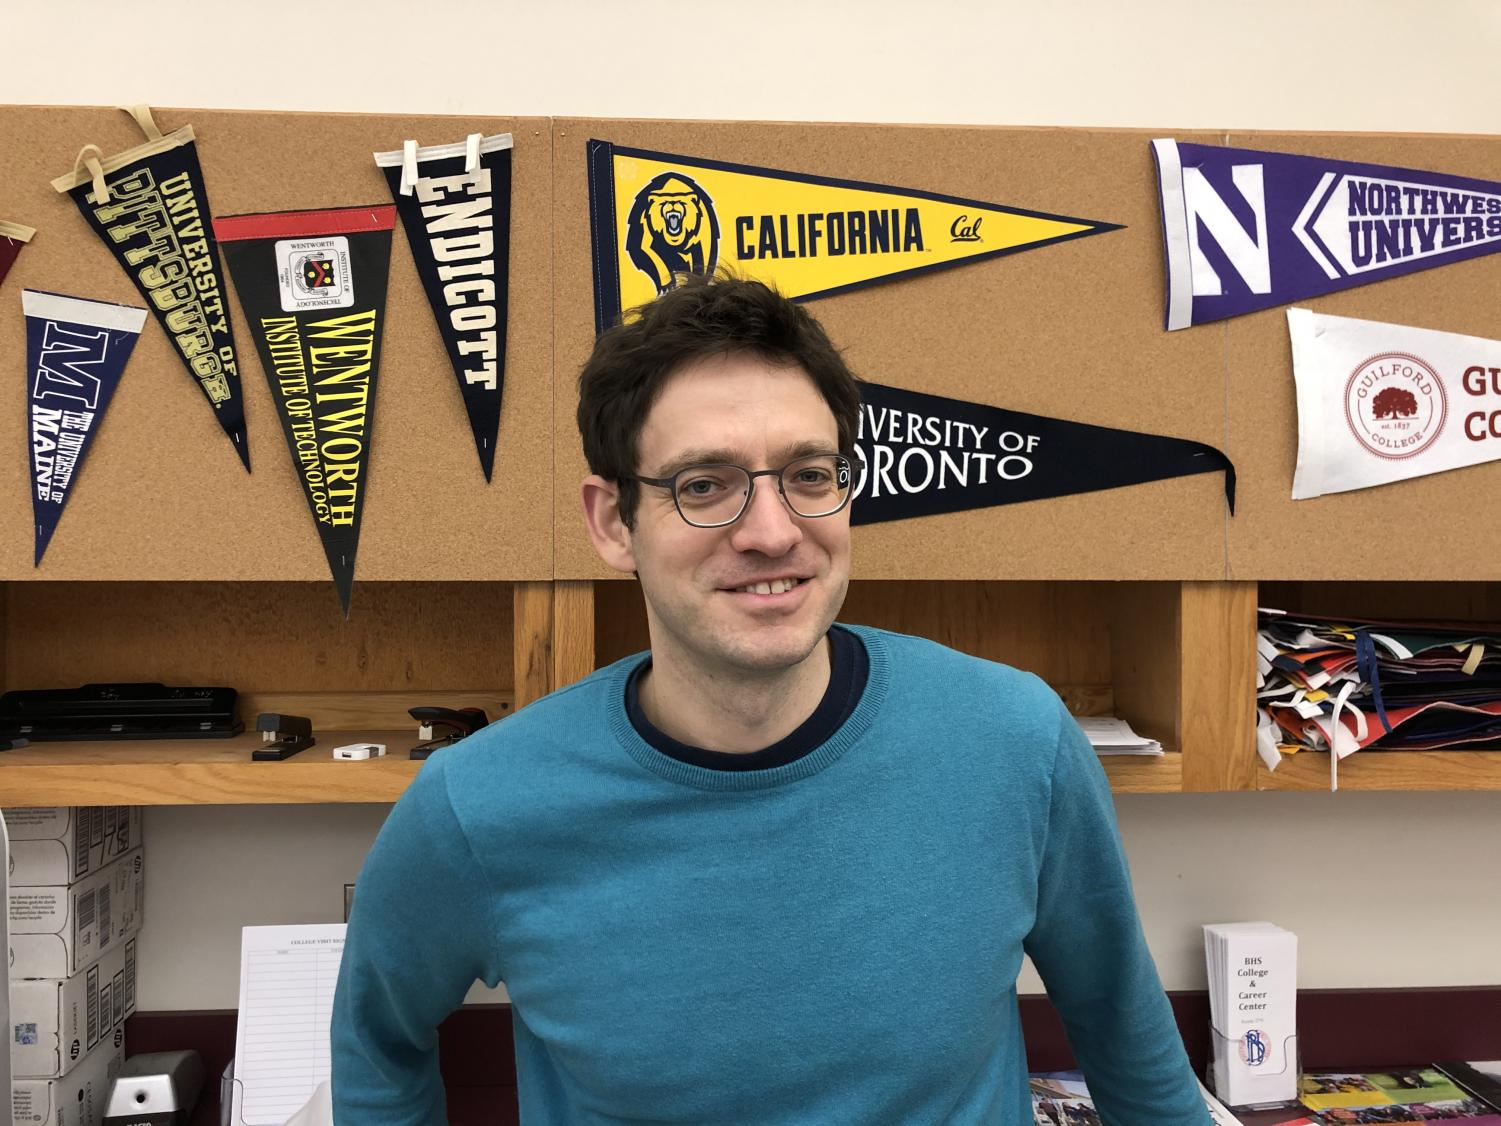 Lenny Libenzon, an alum of the high school and now a college and guidance counselor, works to help students through the college process.